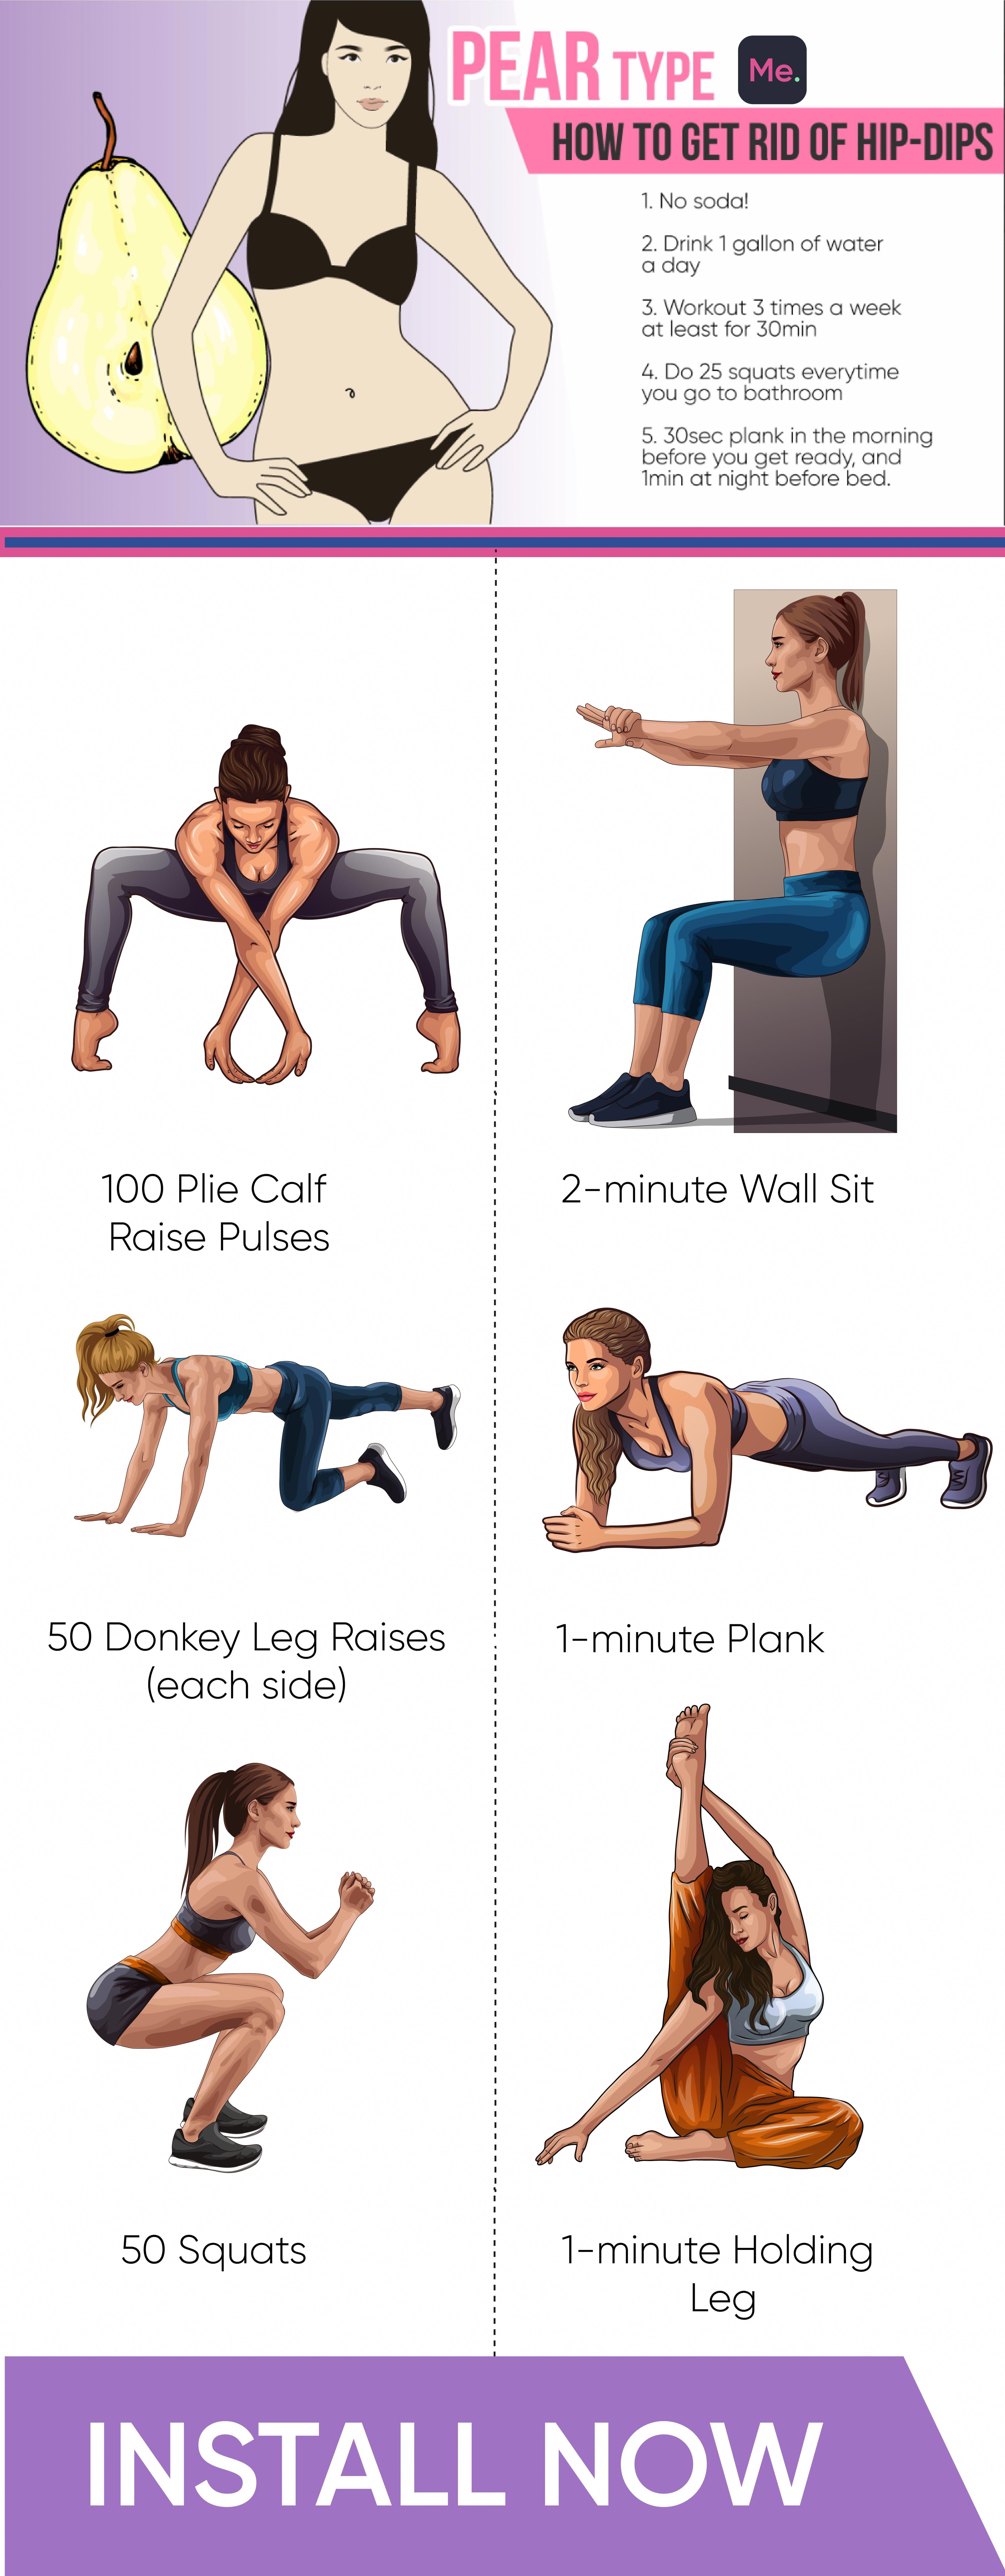 Best Workout to Reduce Hip-Dips at Home in 2020 | Hip ...